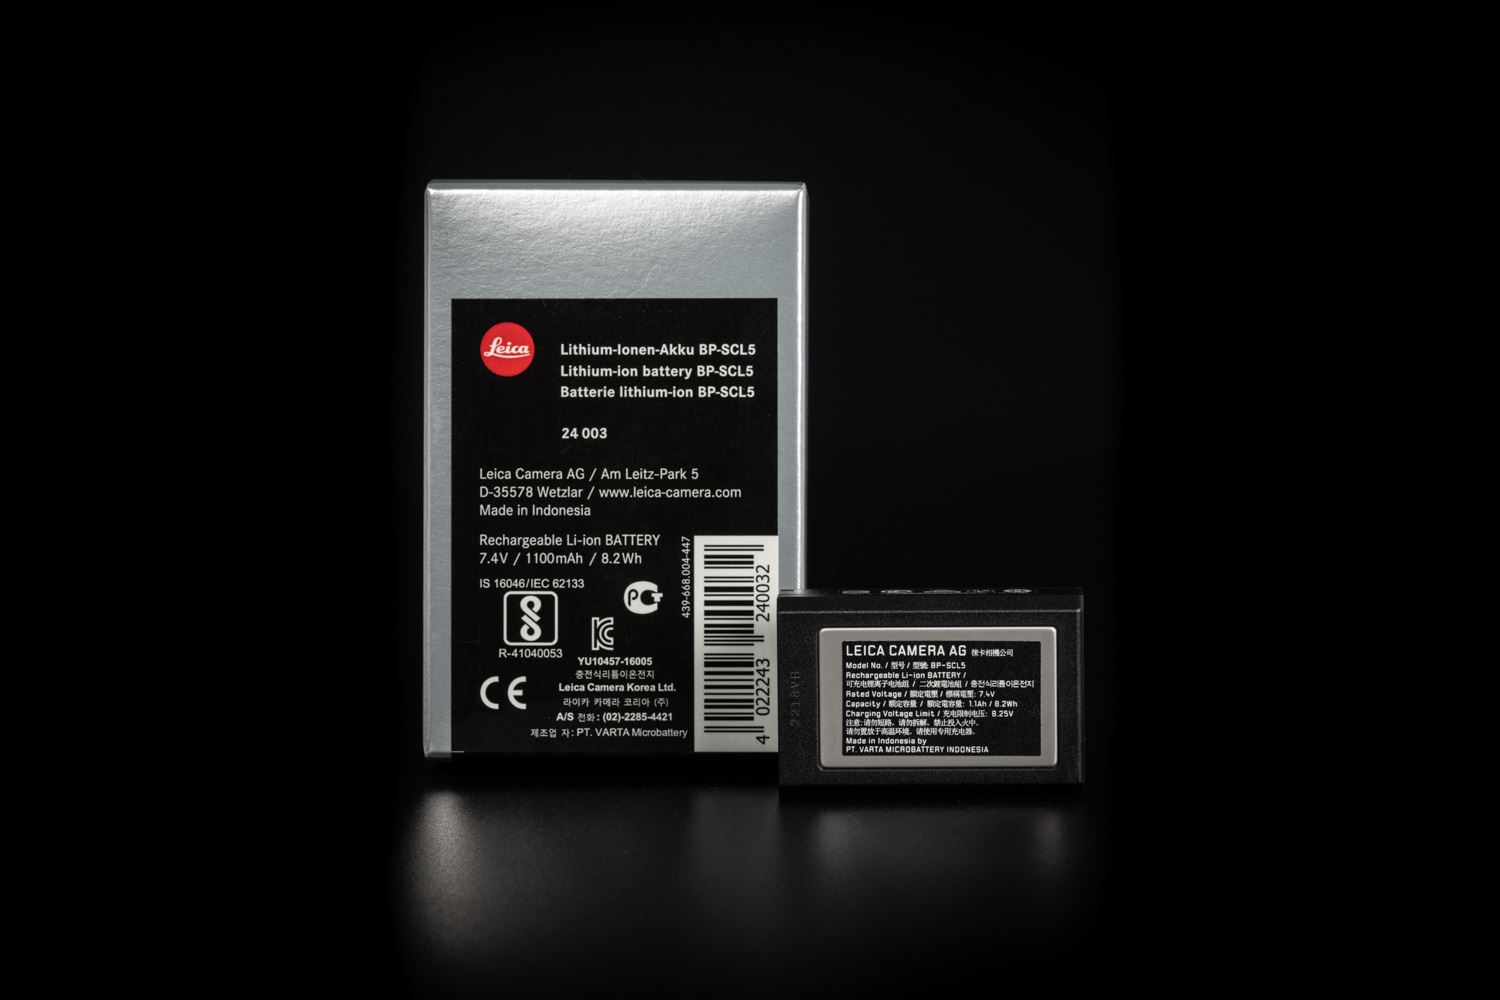 Picture of leica Lithium-ion battery BP-SCL5